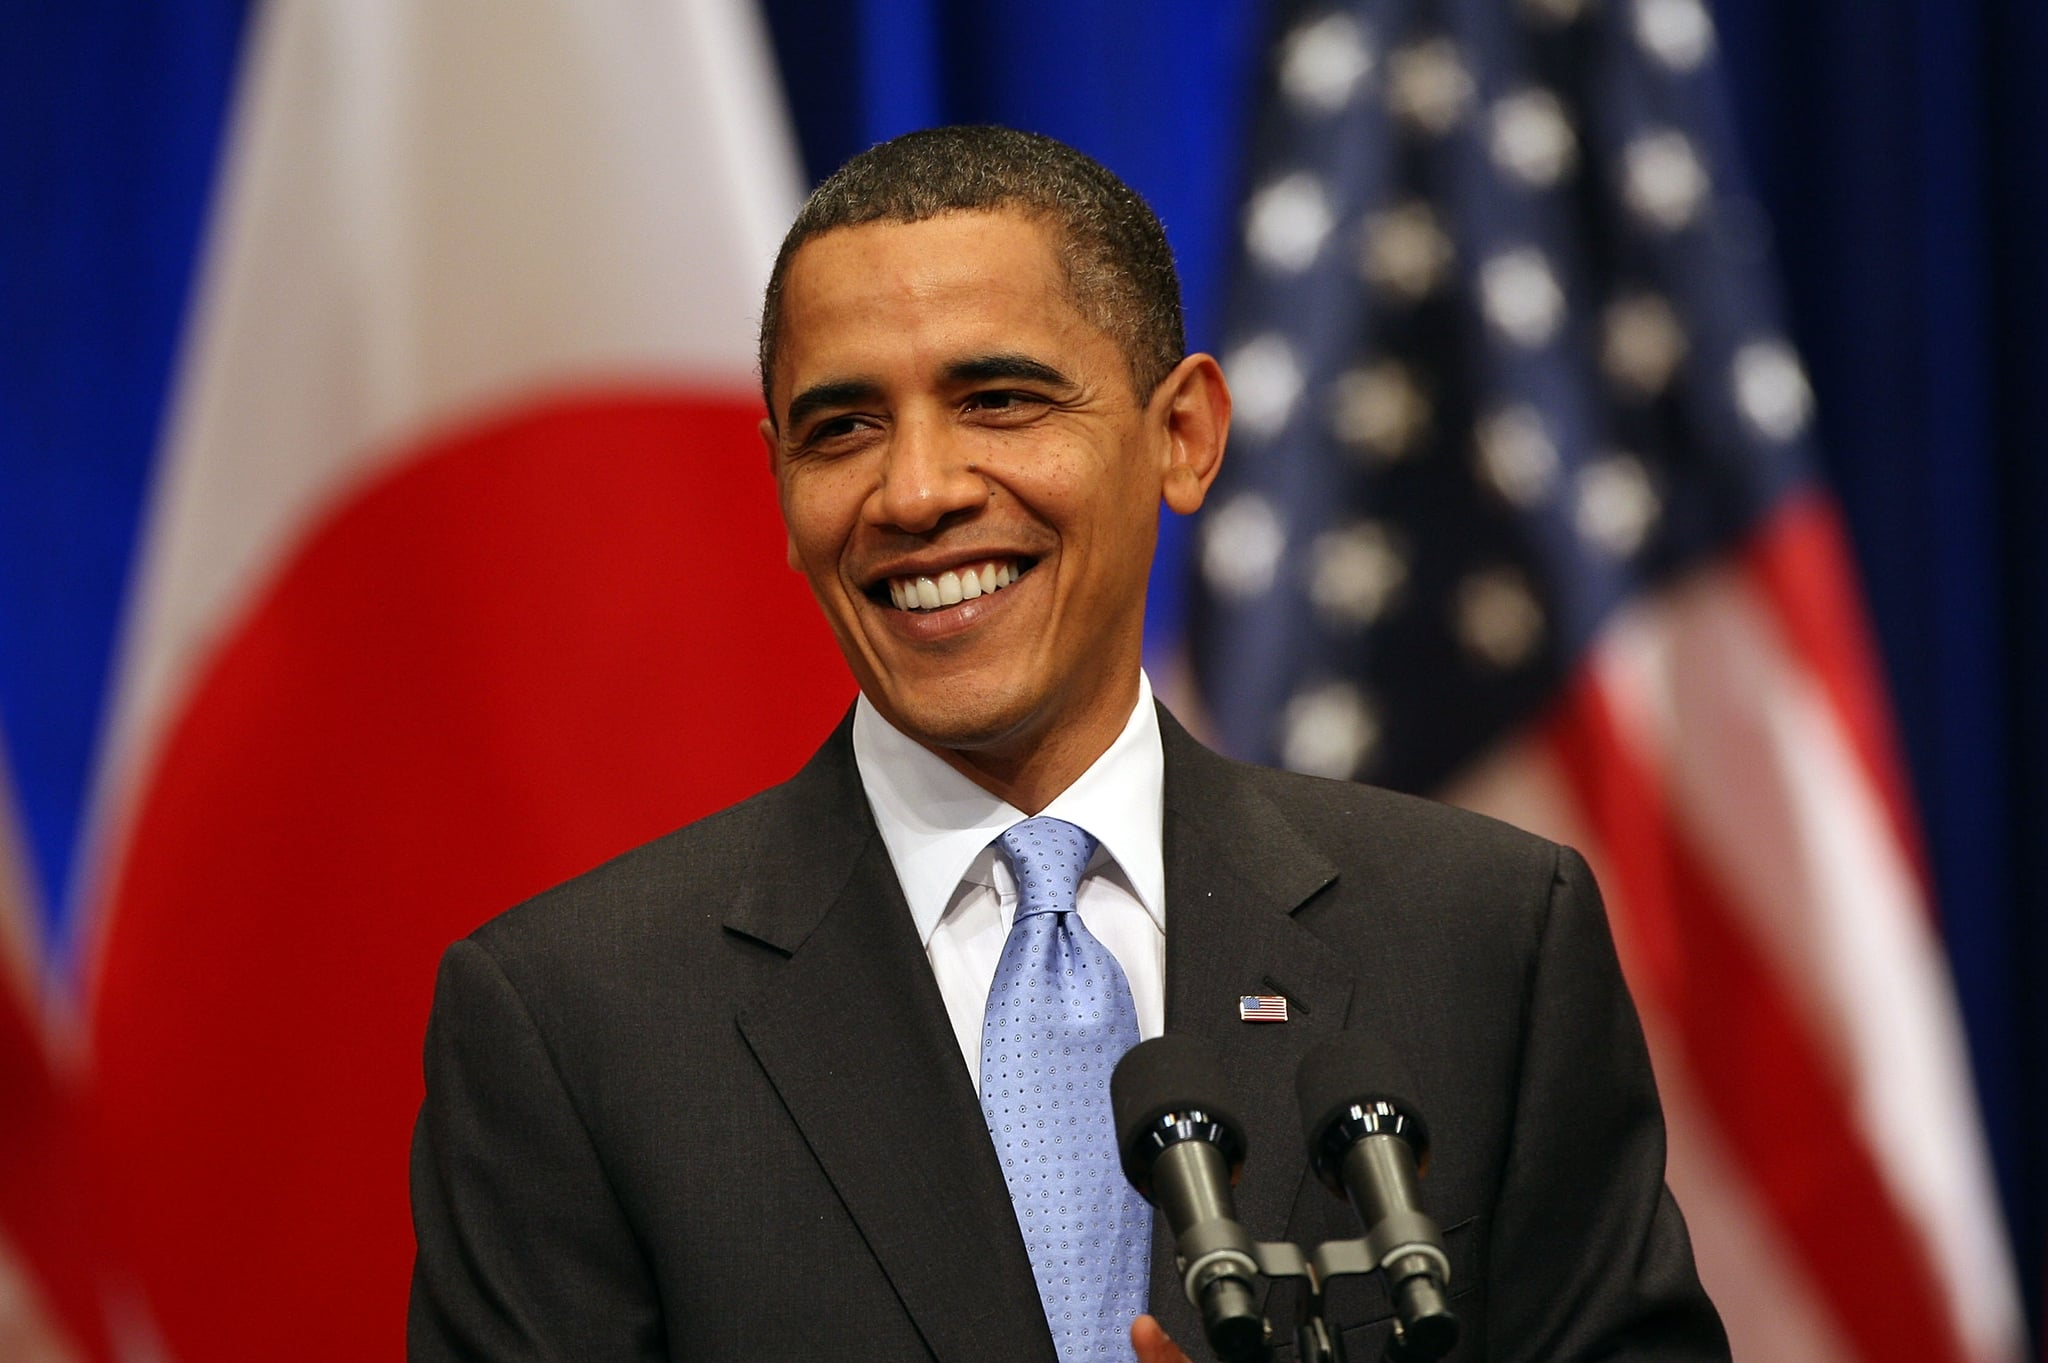 TOKYO - NOVEMBER 14:  U.S. President Barack Obama speaks on U.S./Asia policy at Suntory Hall on November 14, 2009 in Tokyo, Japan. Obama is in Japan for two days prior to attending the 17th APEC Economic Leaders' Meeting in Singapore.  (Photo by Koichi Kamoshida/Getty Images)